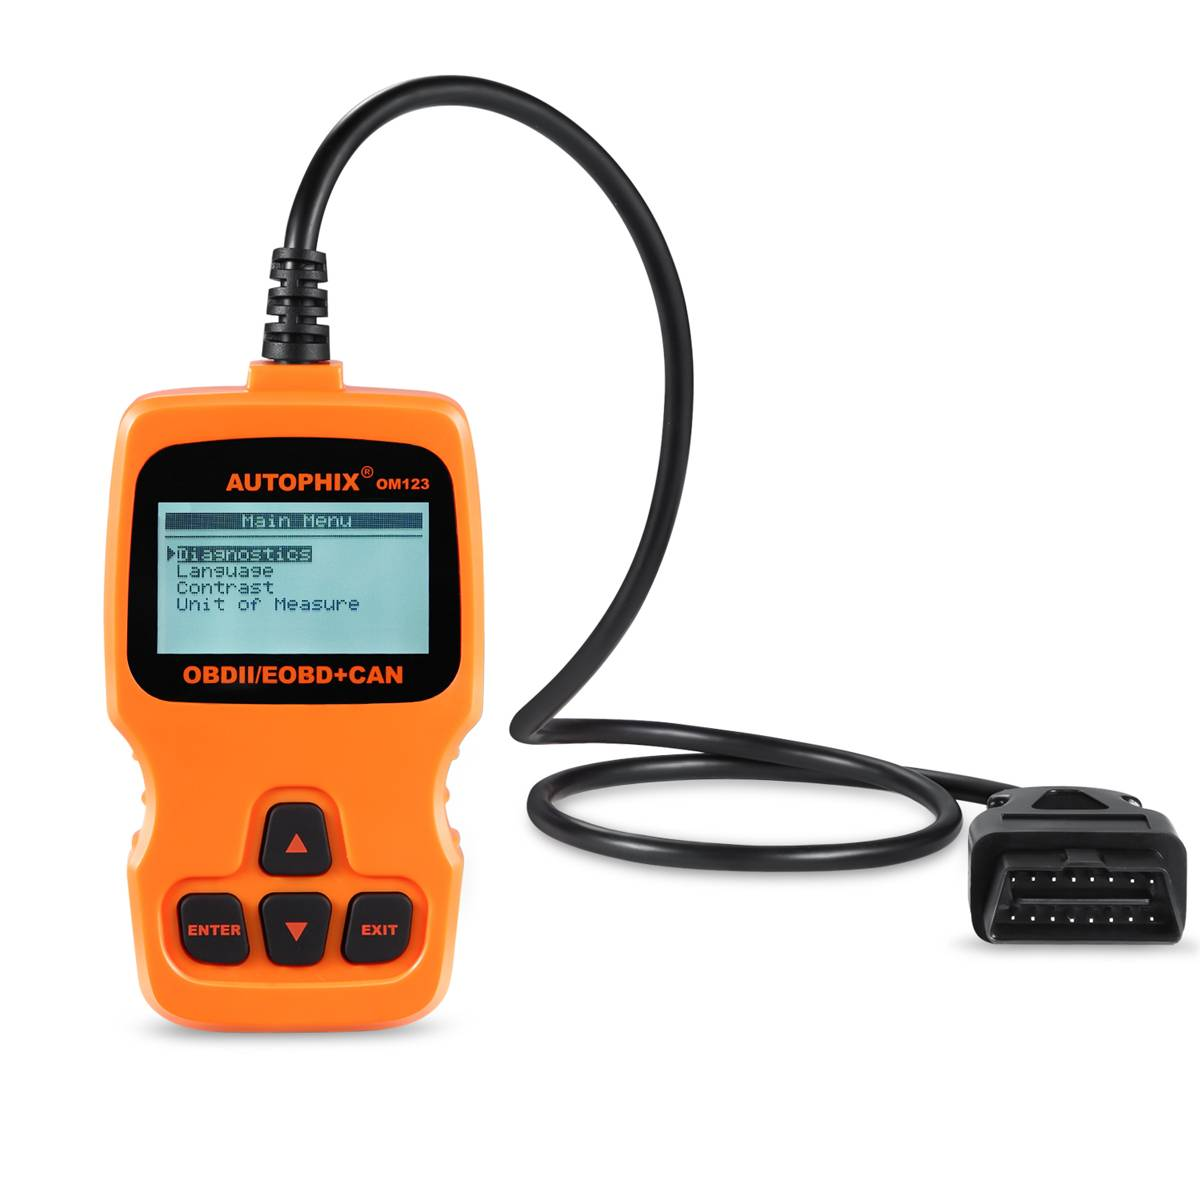 Autophix OM123 Orange OBD2 EOBD Scanner Car Diagnostic Code Reader